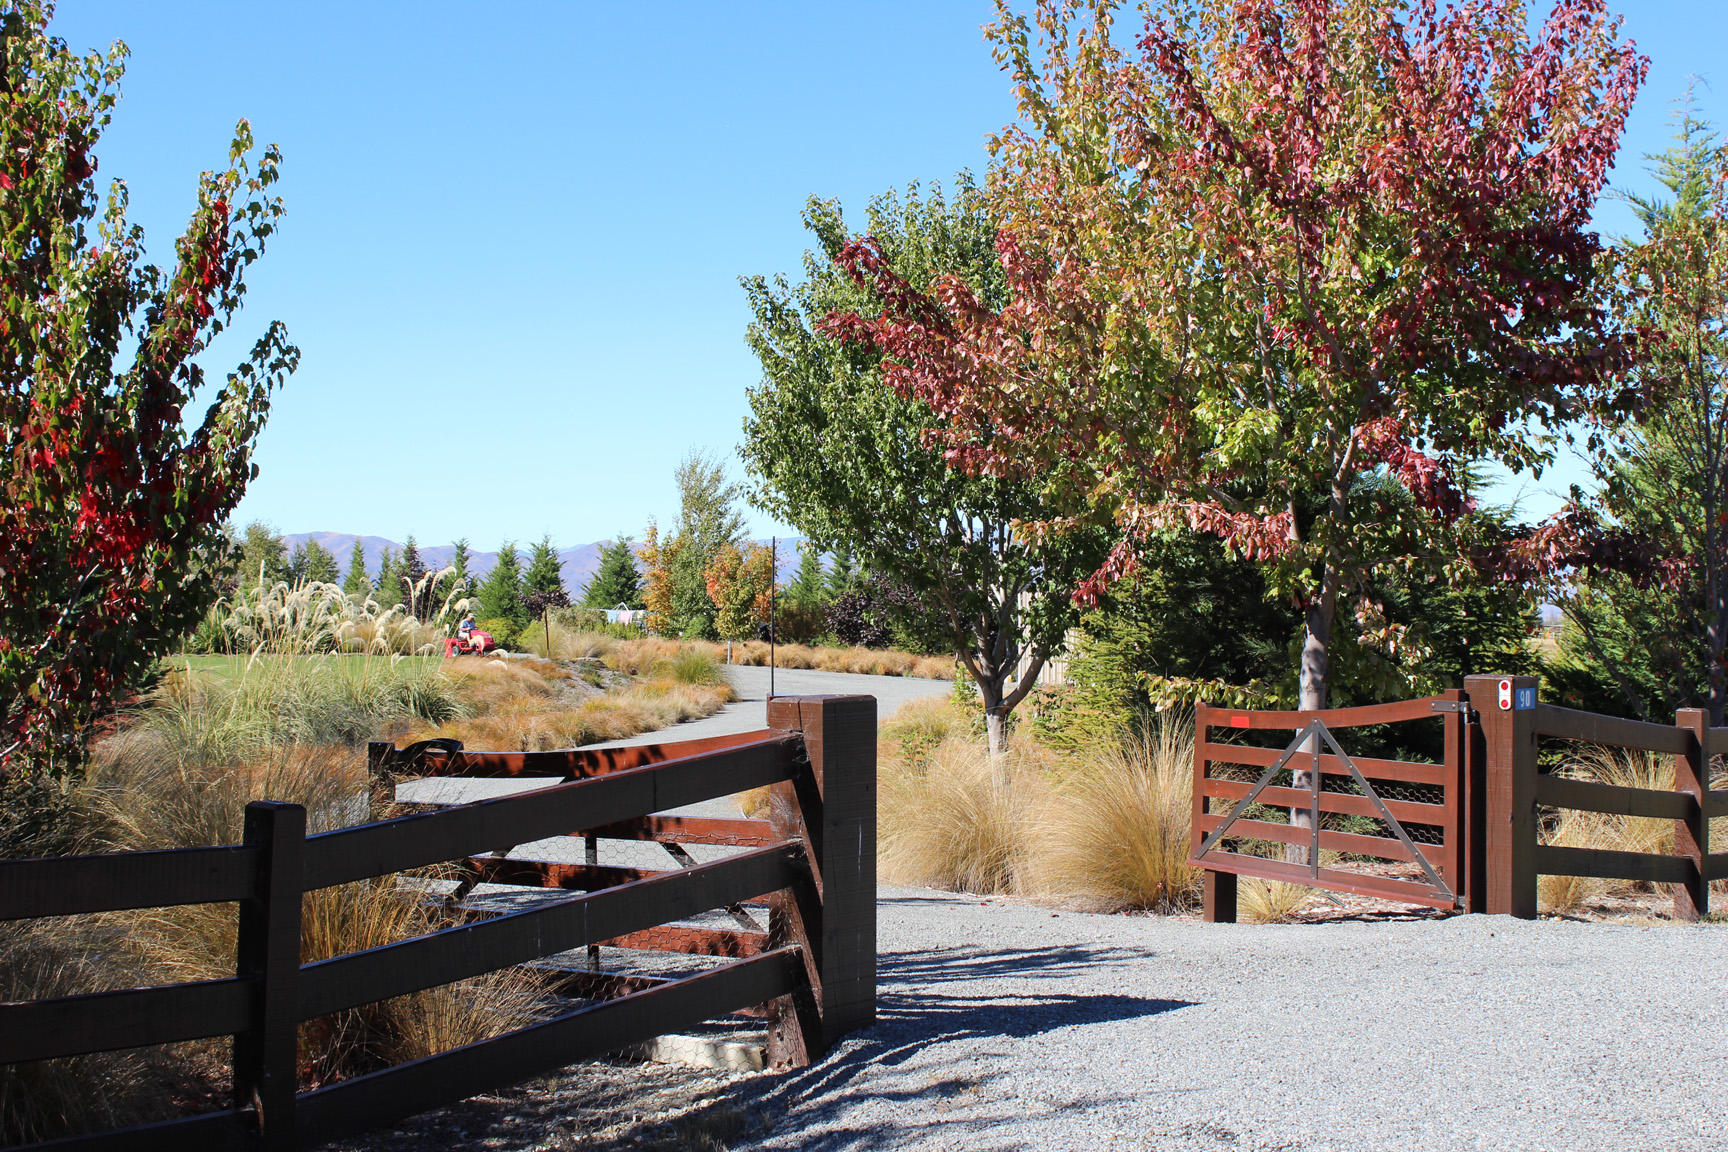 Entrance to the property creates sense of arrival with maples and winding driveway.jpg